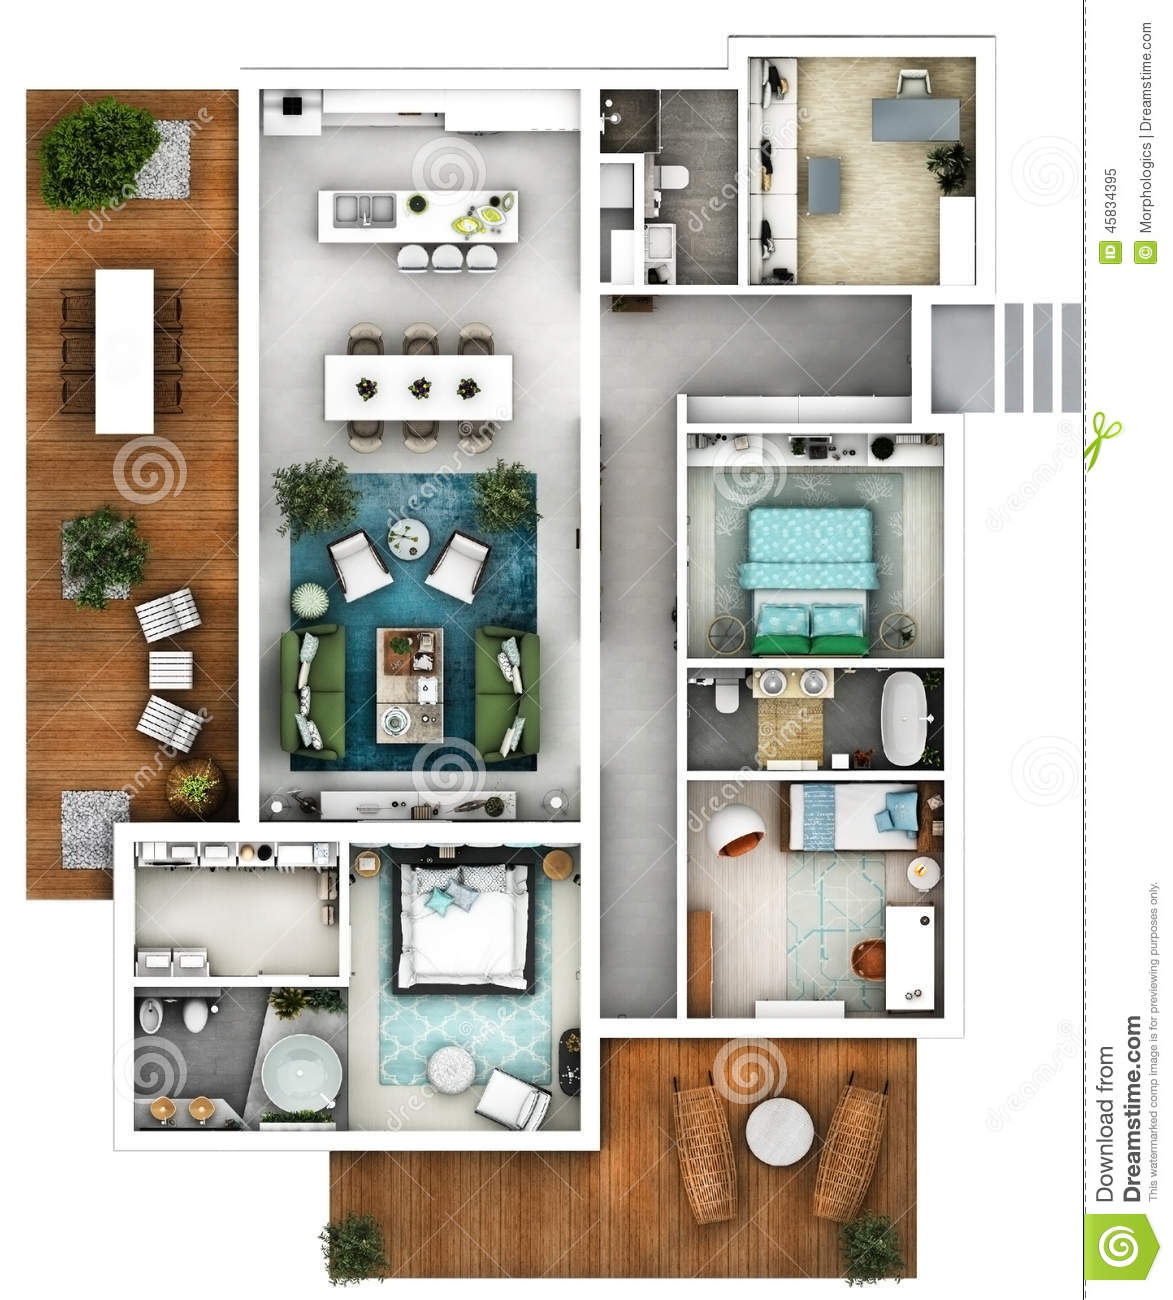 Architectural 3d floor plan top stock photo image 45834395 for 3d floor plans architectural floor plans